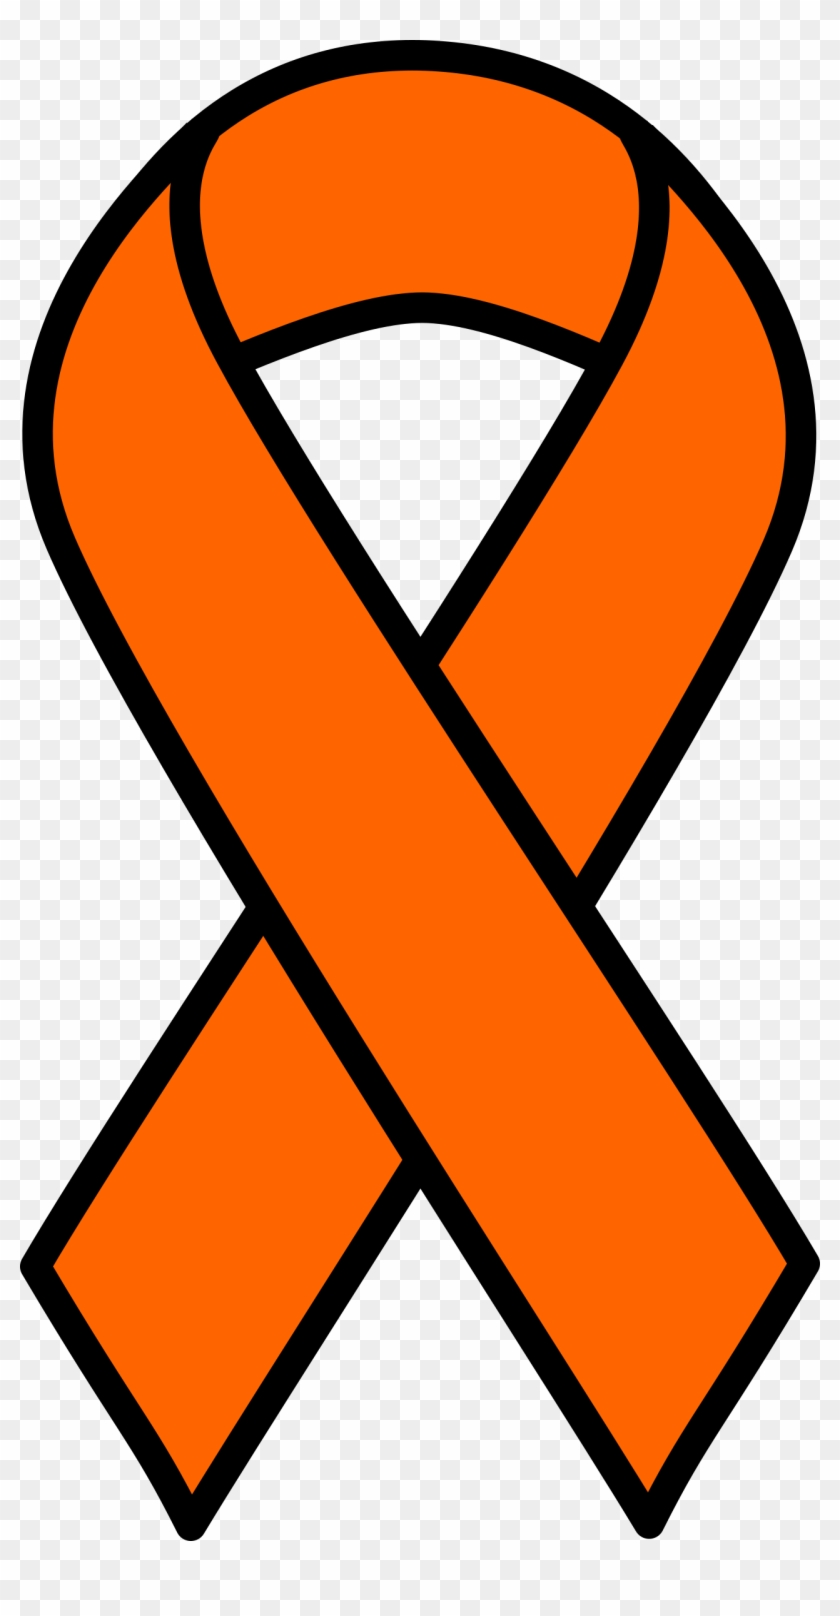 Gallery Of Clipart Orange Kidney Cancer And Leukemia - Gallery Of Clipart Orange Kidney Cancer And Leukemia #106385